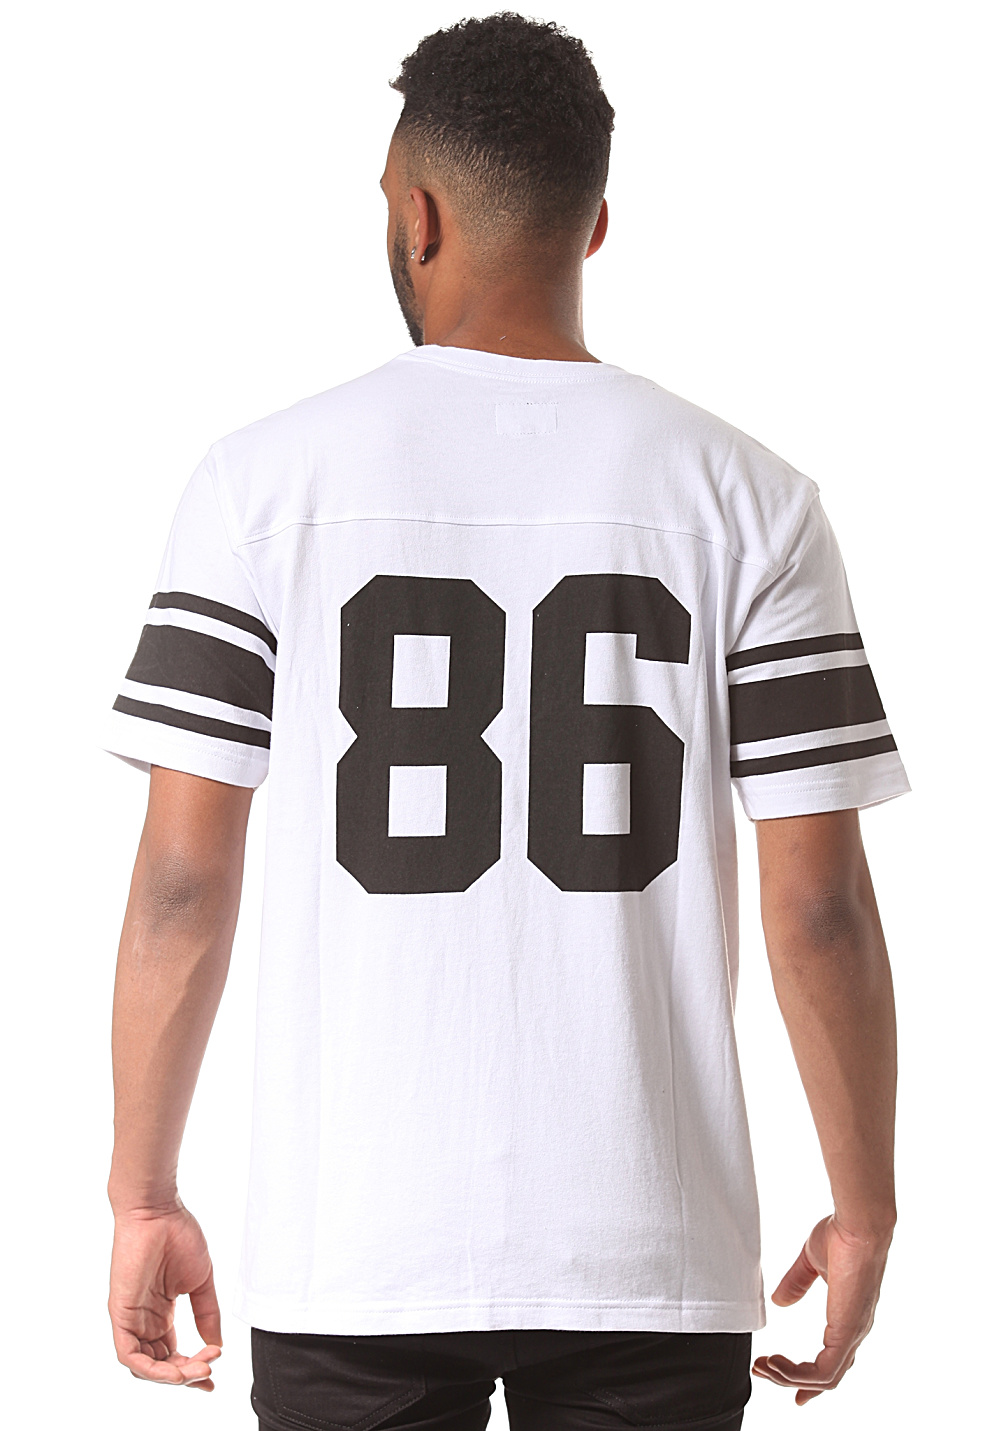 Home · HUF Wrecking Crew Football Jersey - T-Shirt for Men - White. Back to  Overview. 1  2  3. Previous. Next 0b994a4b6